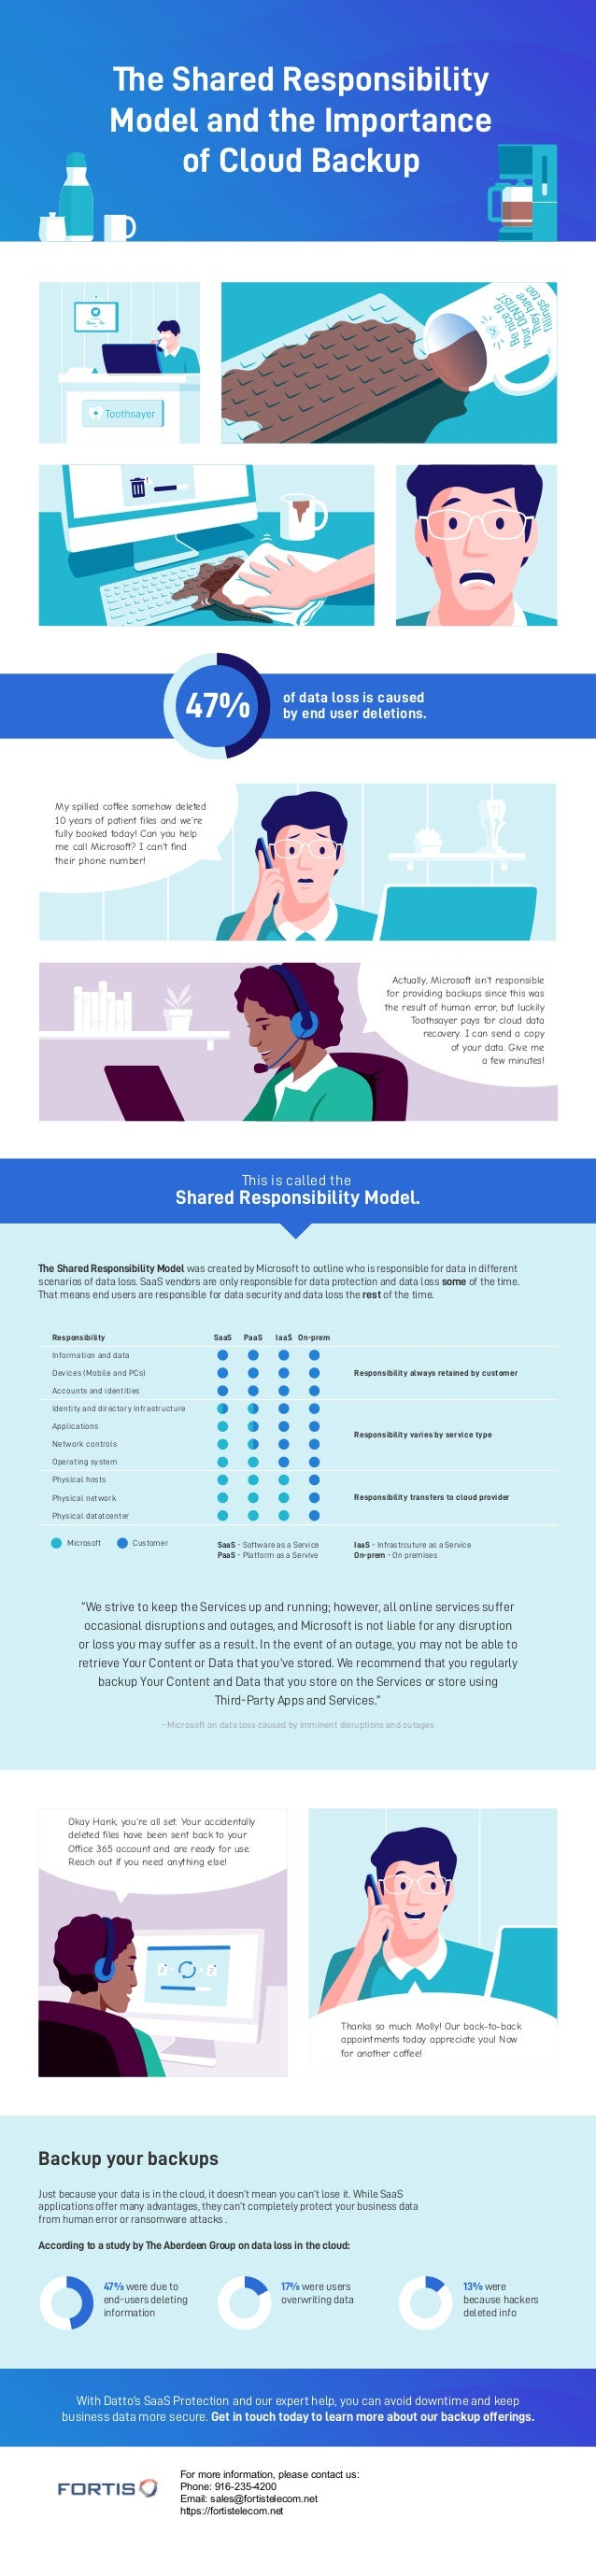 The Shared Responsibility Model and the Importance of Cloud Backup The Shared Responsibility Model was created by Microsof...